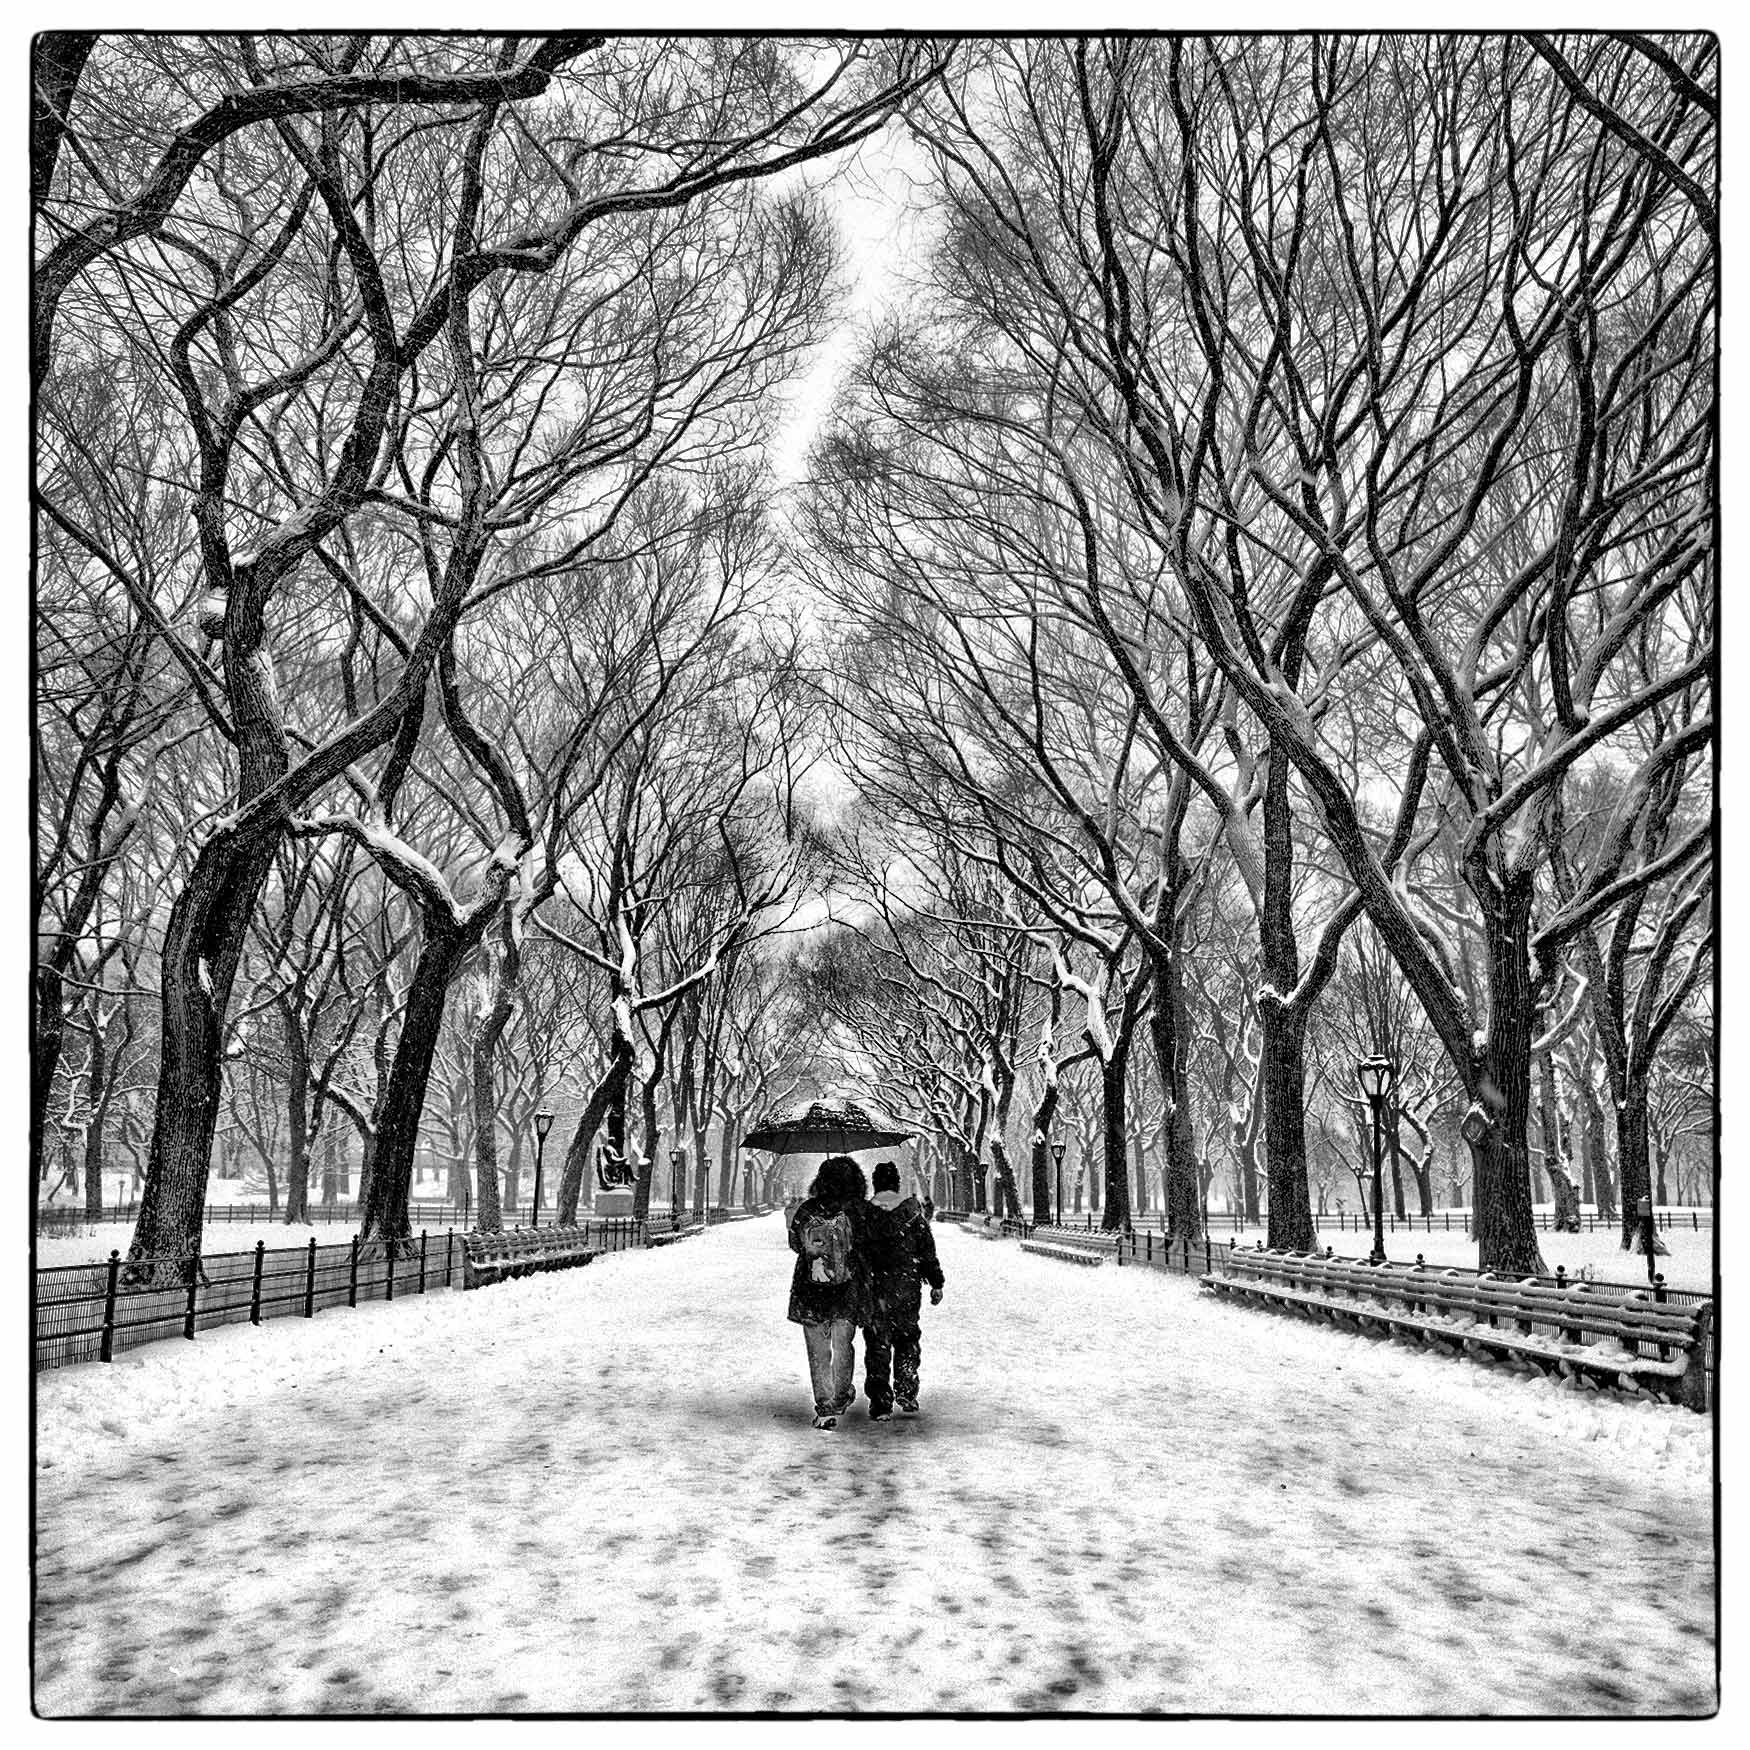 a-couple-is-framed-by-large-trees-as-they-walk-in-new-yorks-park-during-a-heavy-snow-storm